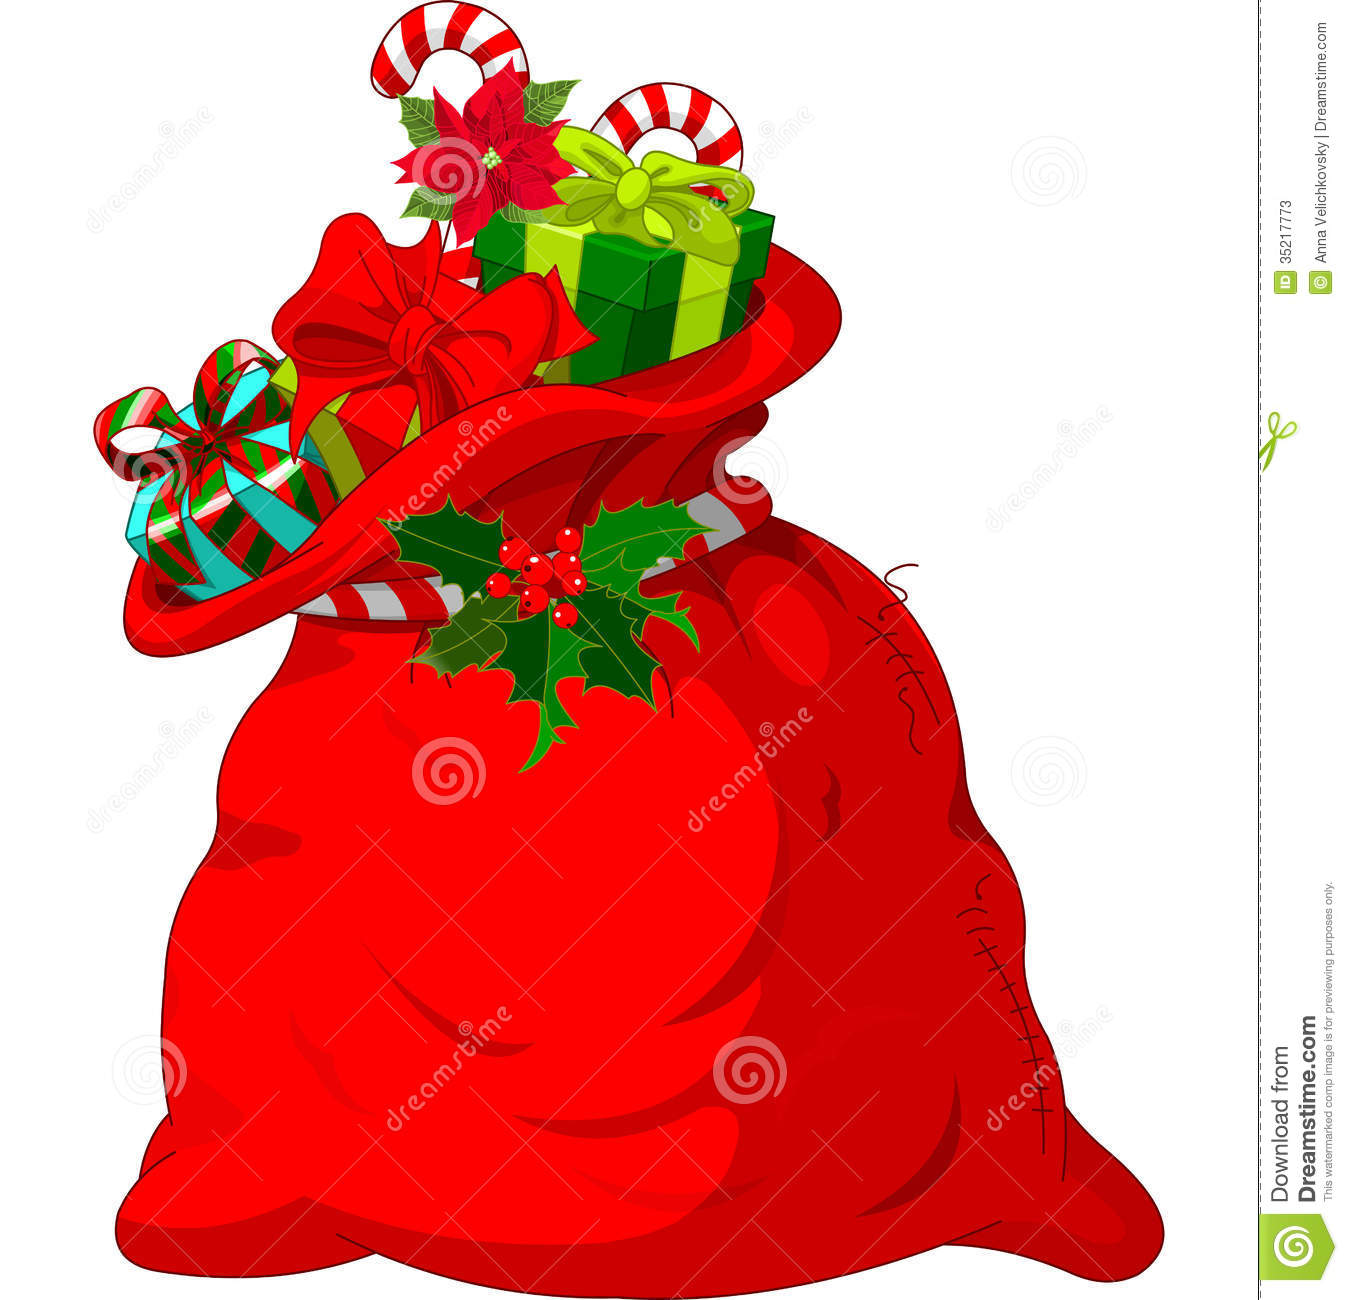 Santa s sack stock photos image